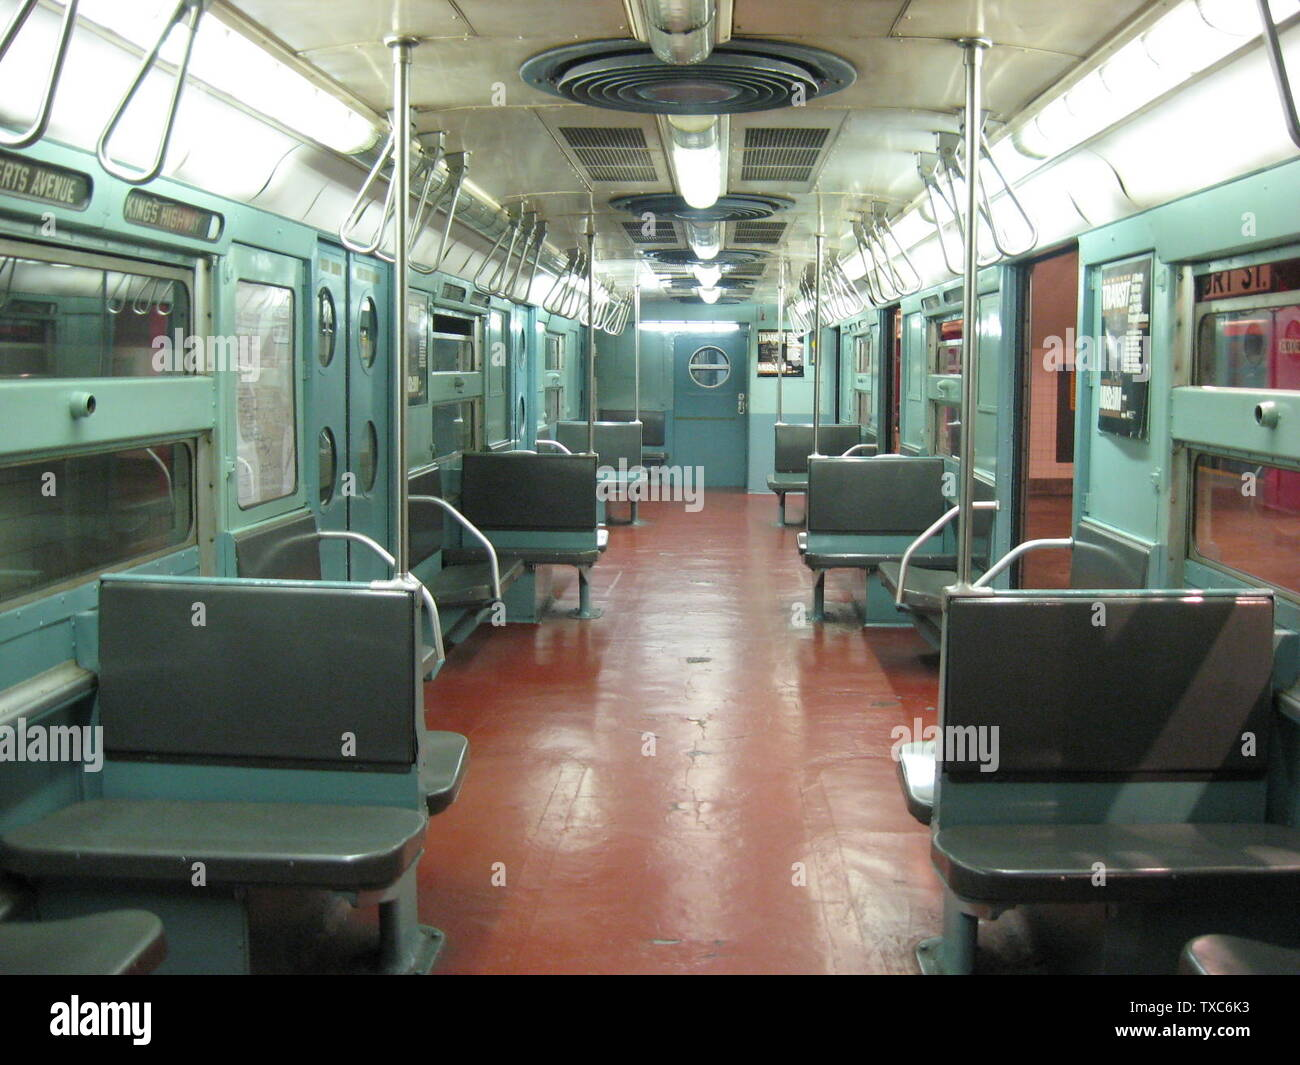 'English: The interior of an R34 subway car as seen from the center aisle. This cars were ordered as part of a test train for a potential order of 400 cars that never materialized and is one of the first cars (along with the other nine from the test train) to be built for the city with a stainless steel body and finish. The cars came with many innovative features of the day, but in time, they were orphaned by the transit system and abandoned to menial shuttle duty along the Franklin Avenue Shuttle. Car 8019 is the only car that remains and is on permanent display at the New York City Transit M - Stock Image